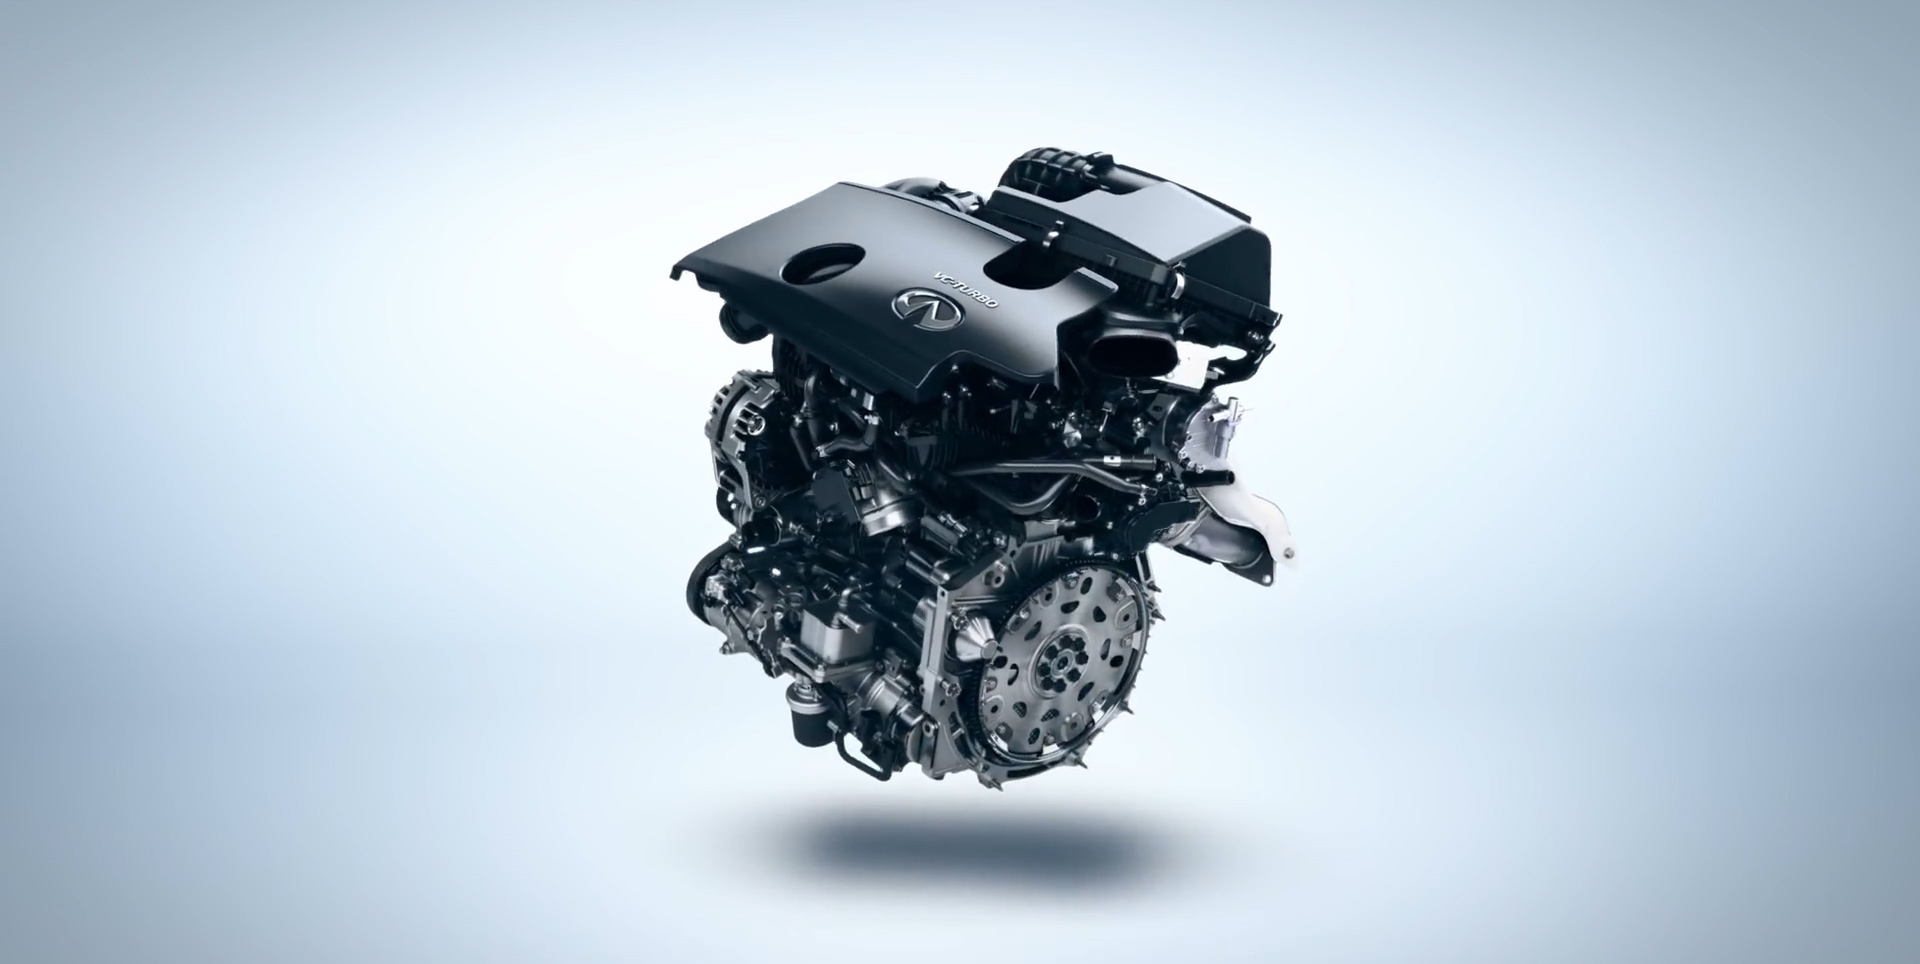 VC-Turbo Engine from INFINITI